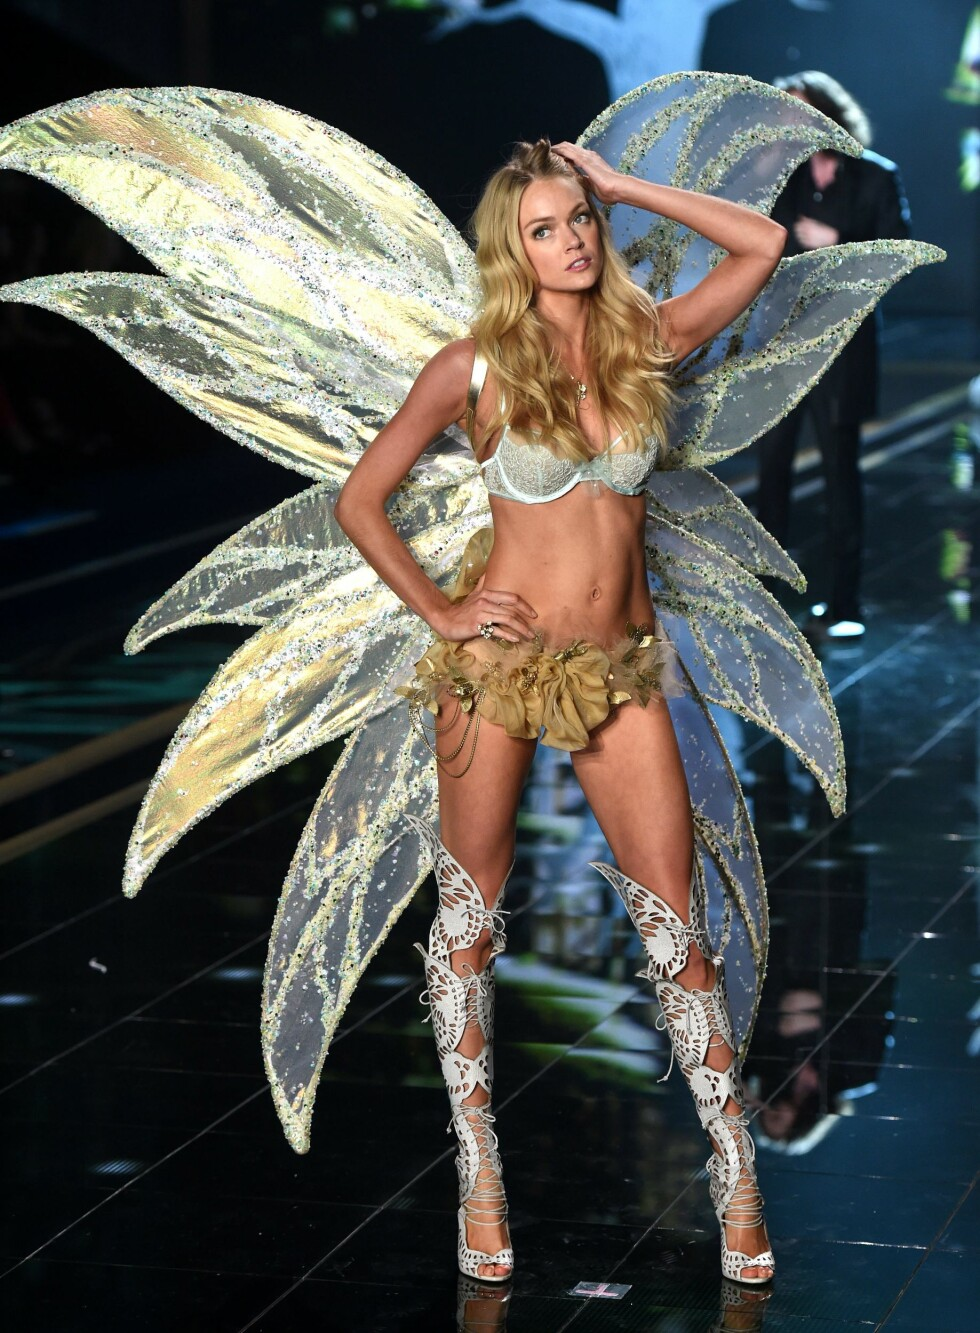 Lindsay Ellingson i et alveinspirert antrekk. Foto: REX/David Fisher/All Over Press